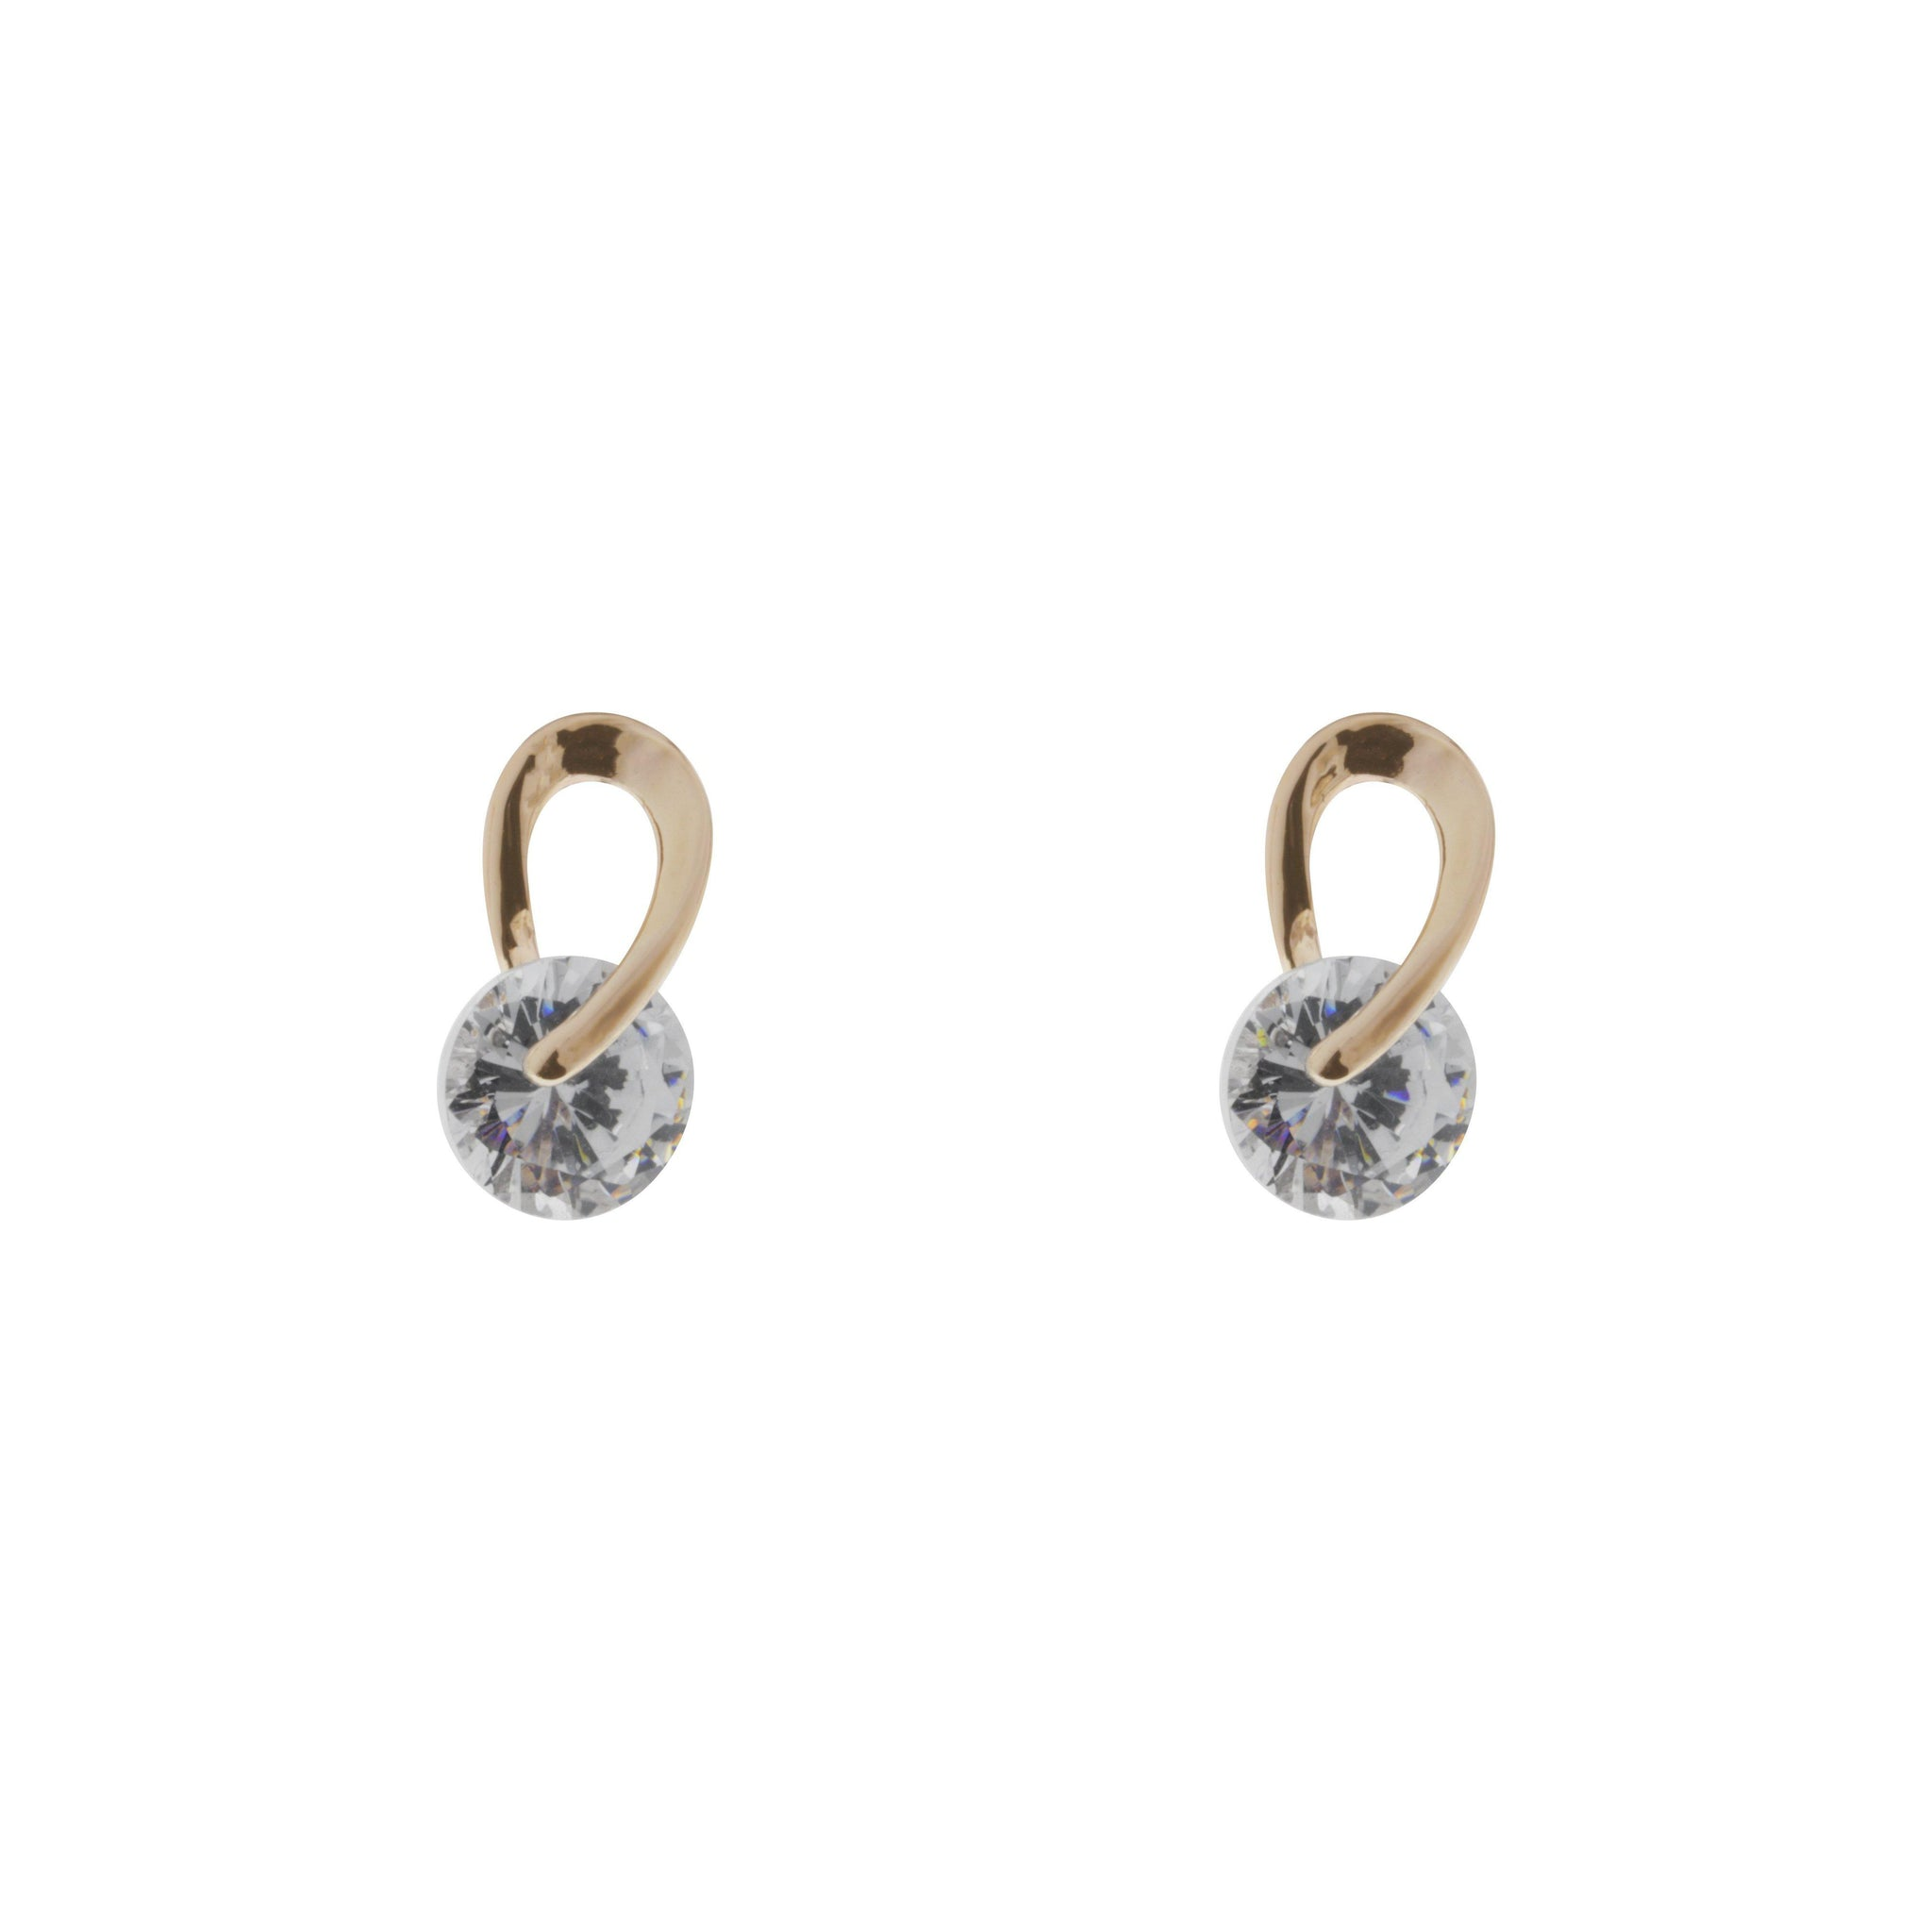 Rose Gold Cubic Zirconia Twist Earrings-Jewellery-Indulgence-Thursford Enterprises Ltd.